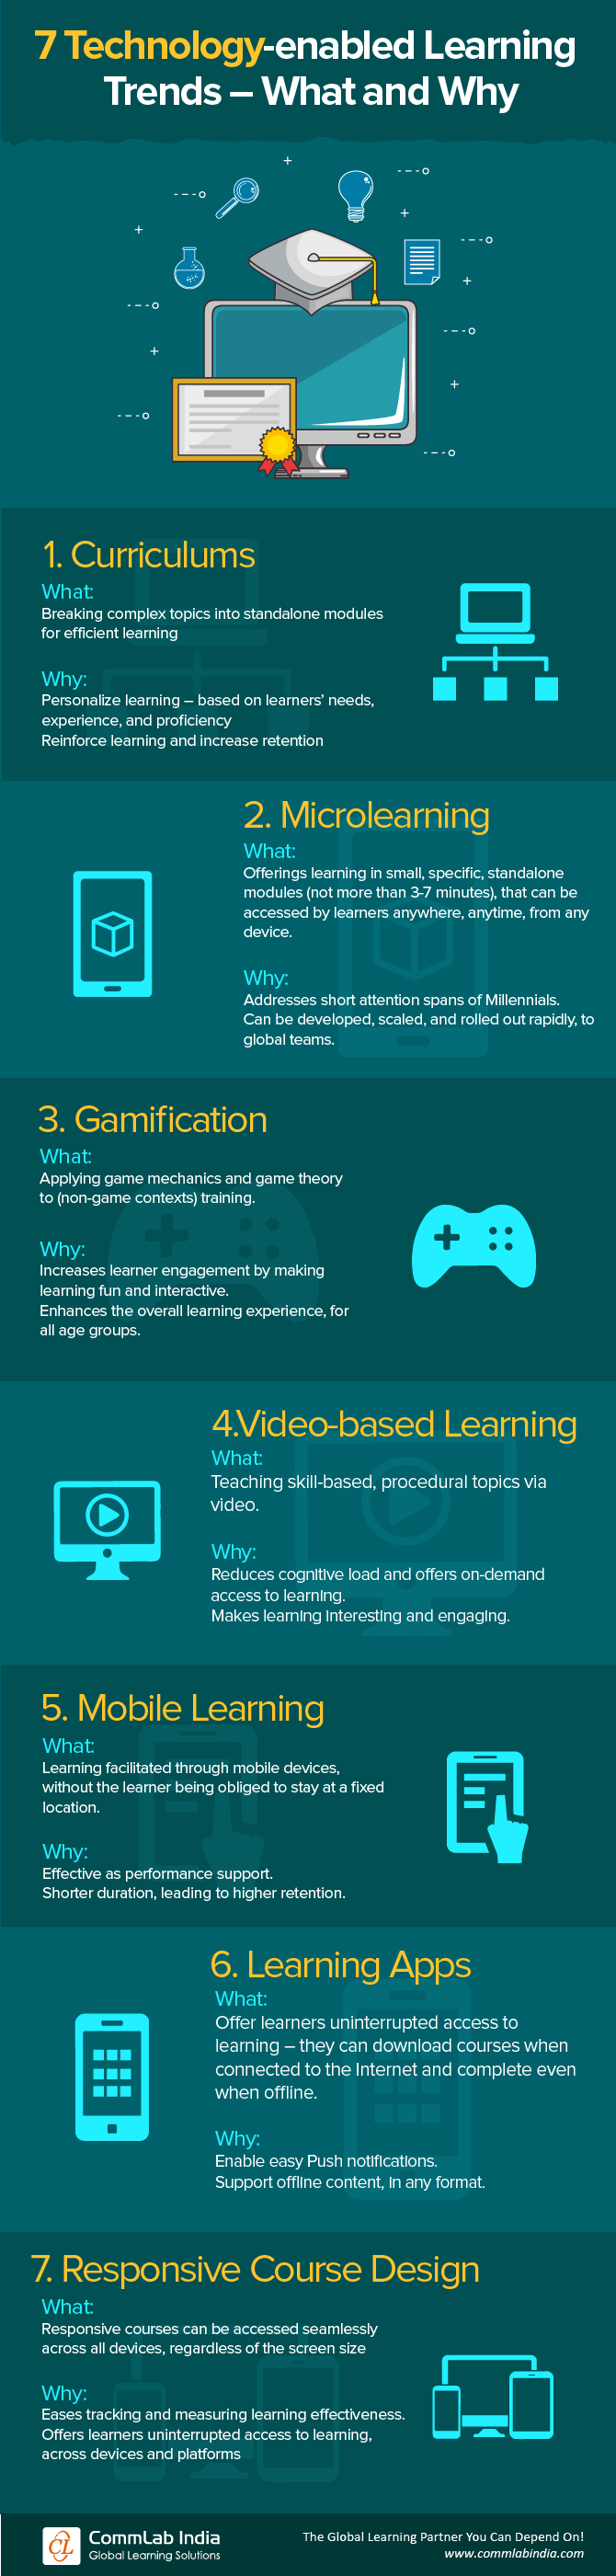 7 Technology-enabled Learning Trends – What and Why [Infographic]